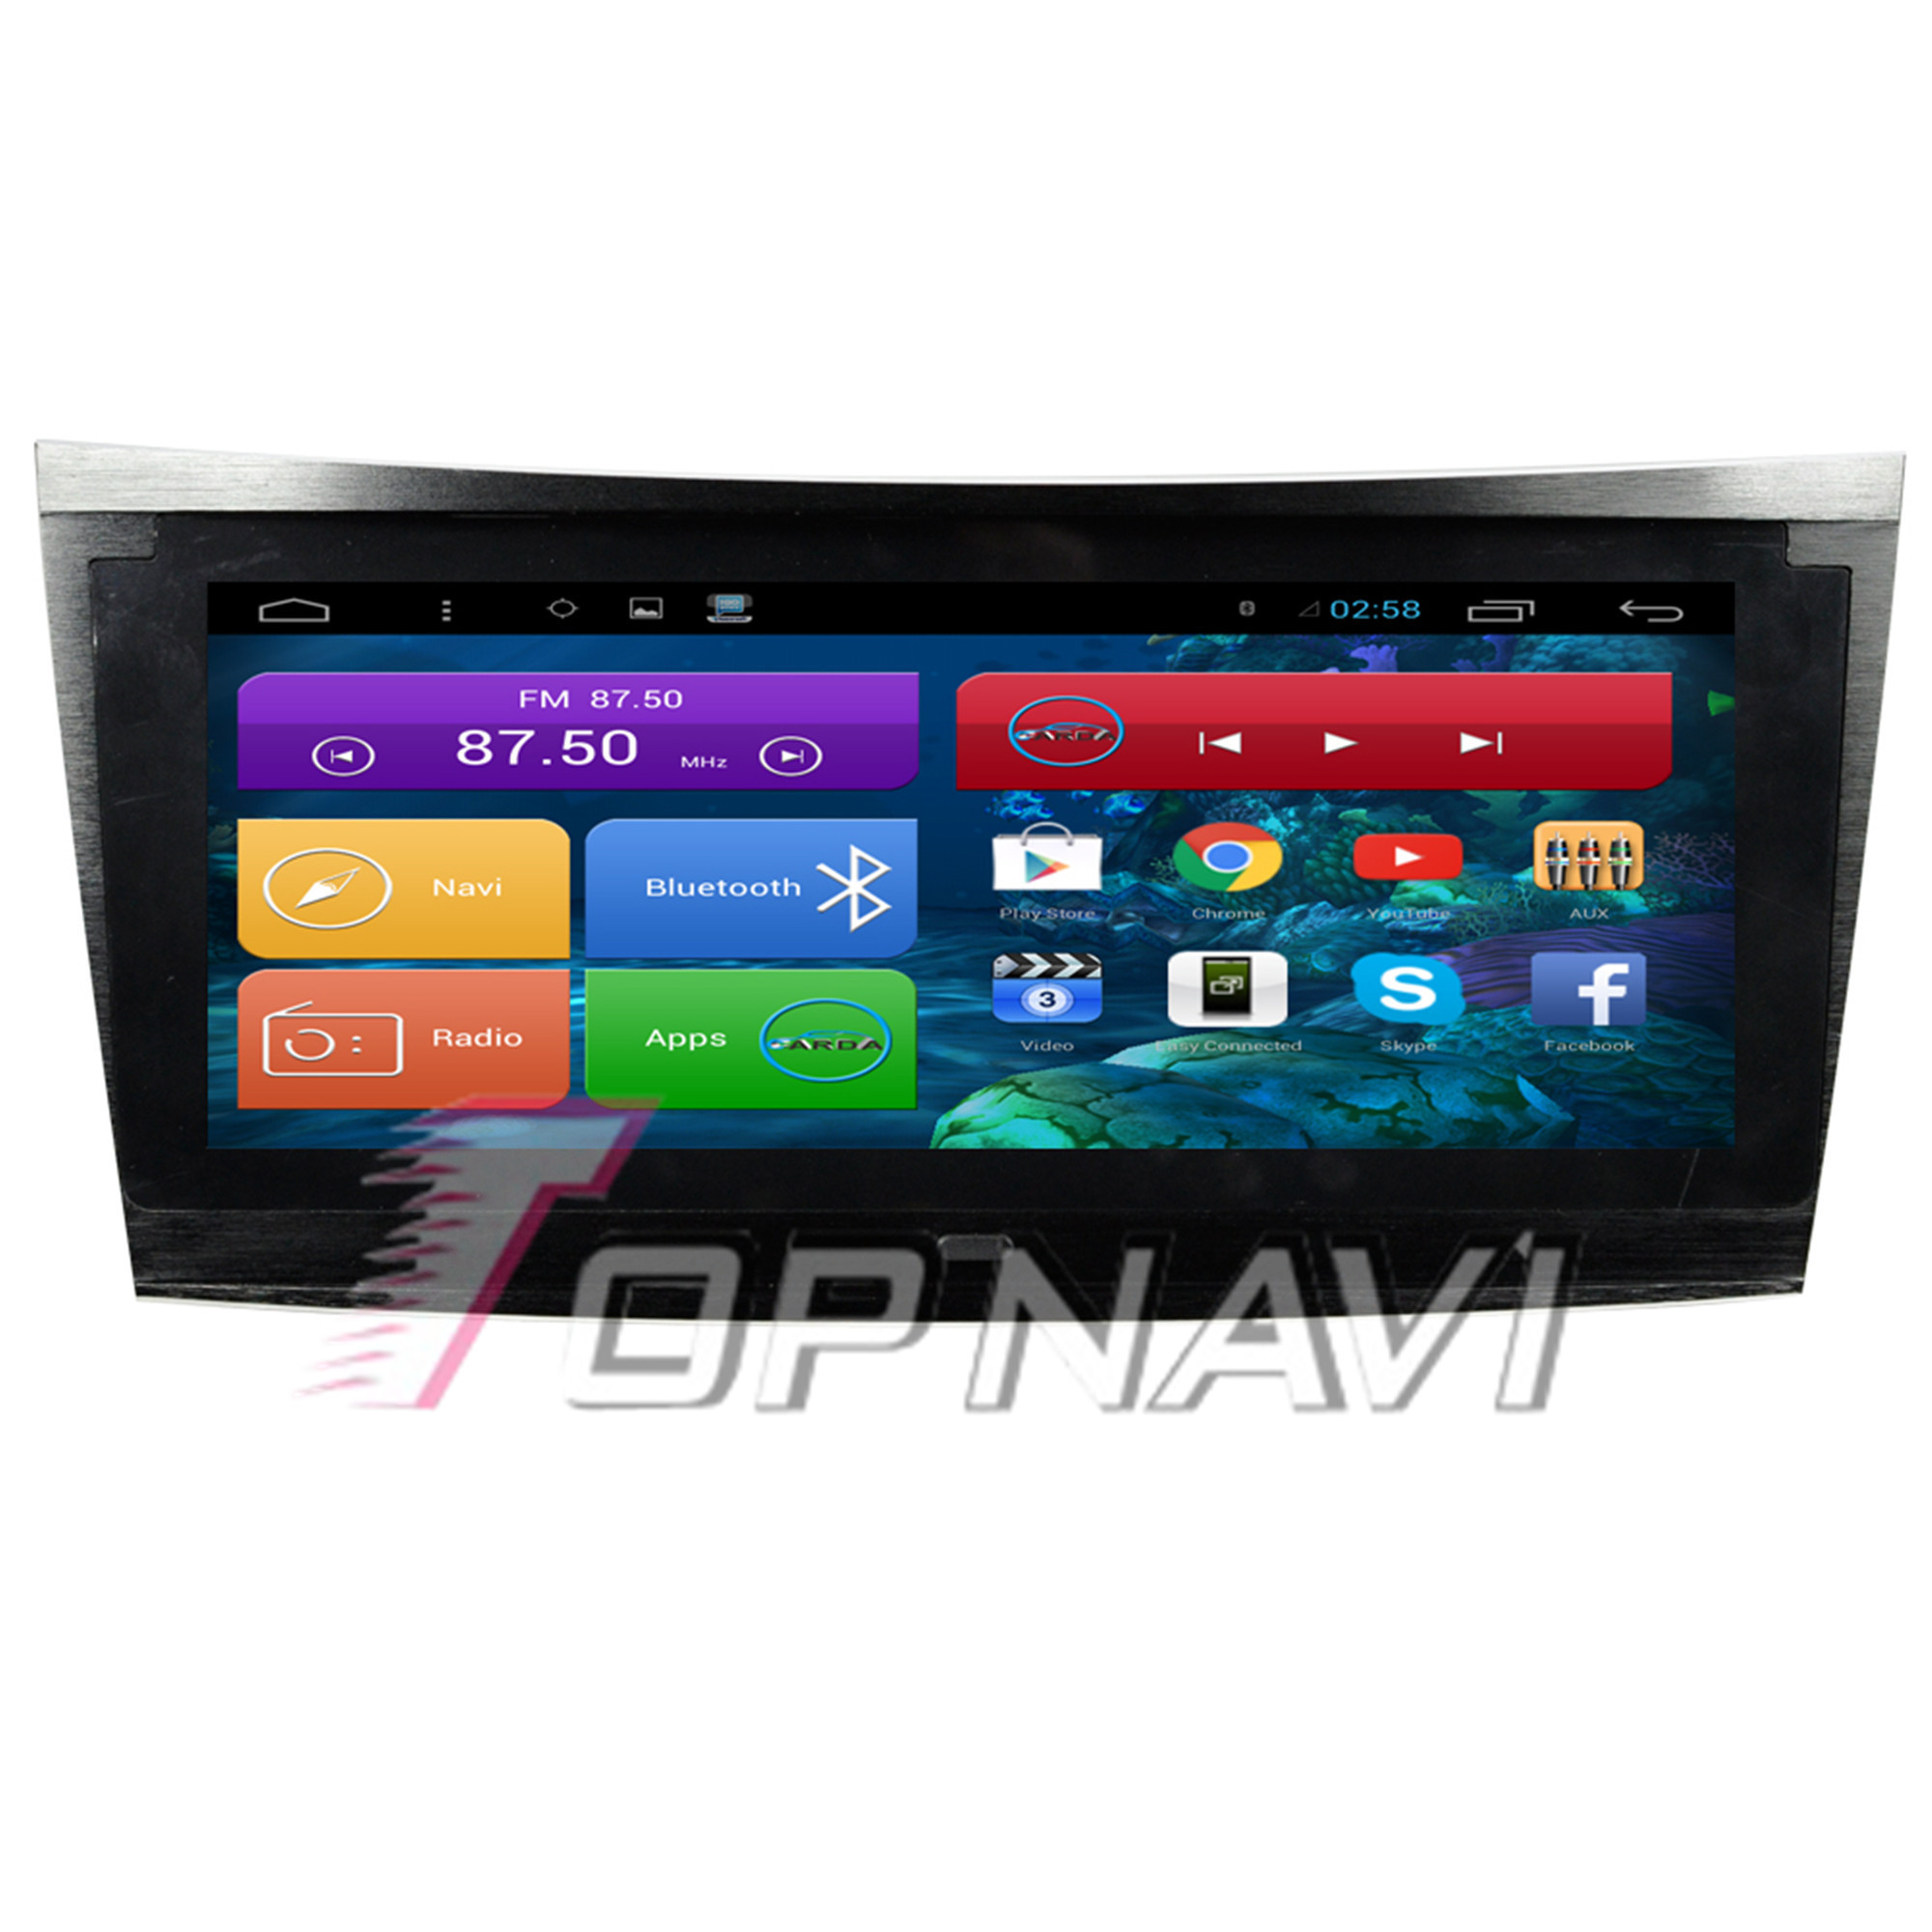 8.8'' Quad Core Android 4.4 Car PC Car Stereo for E Class 2002 2003 2004 2005 2006 2007 2008 For BENZ With Radio GPS Wifi BT Map